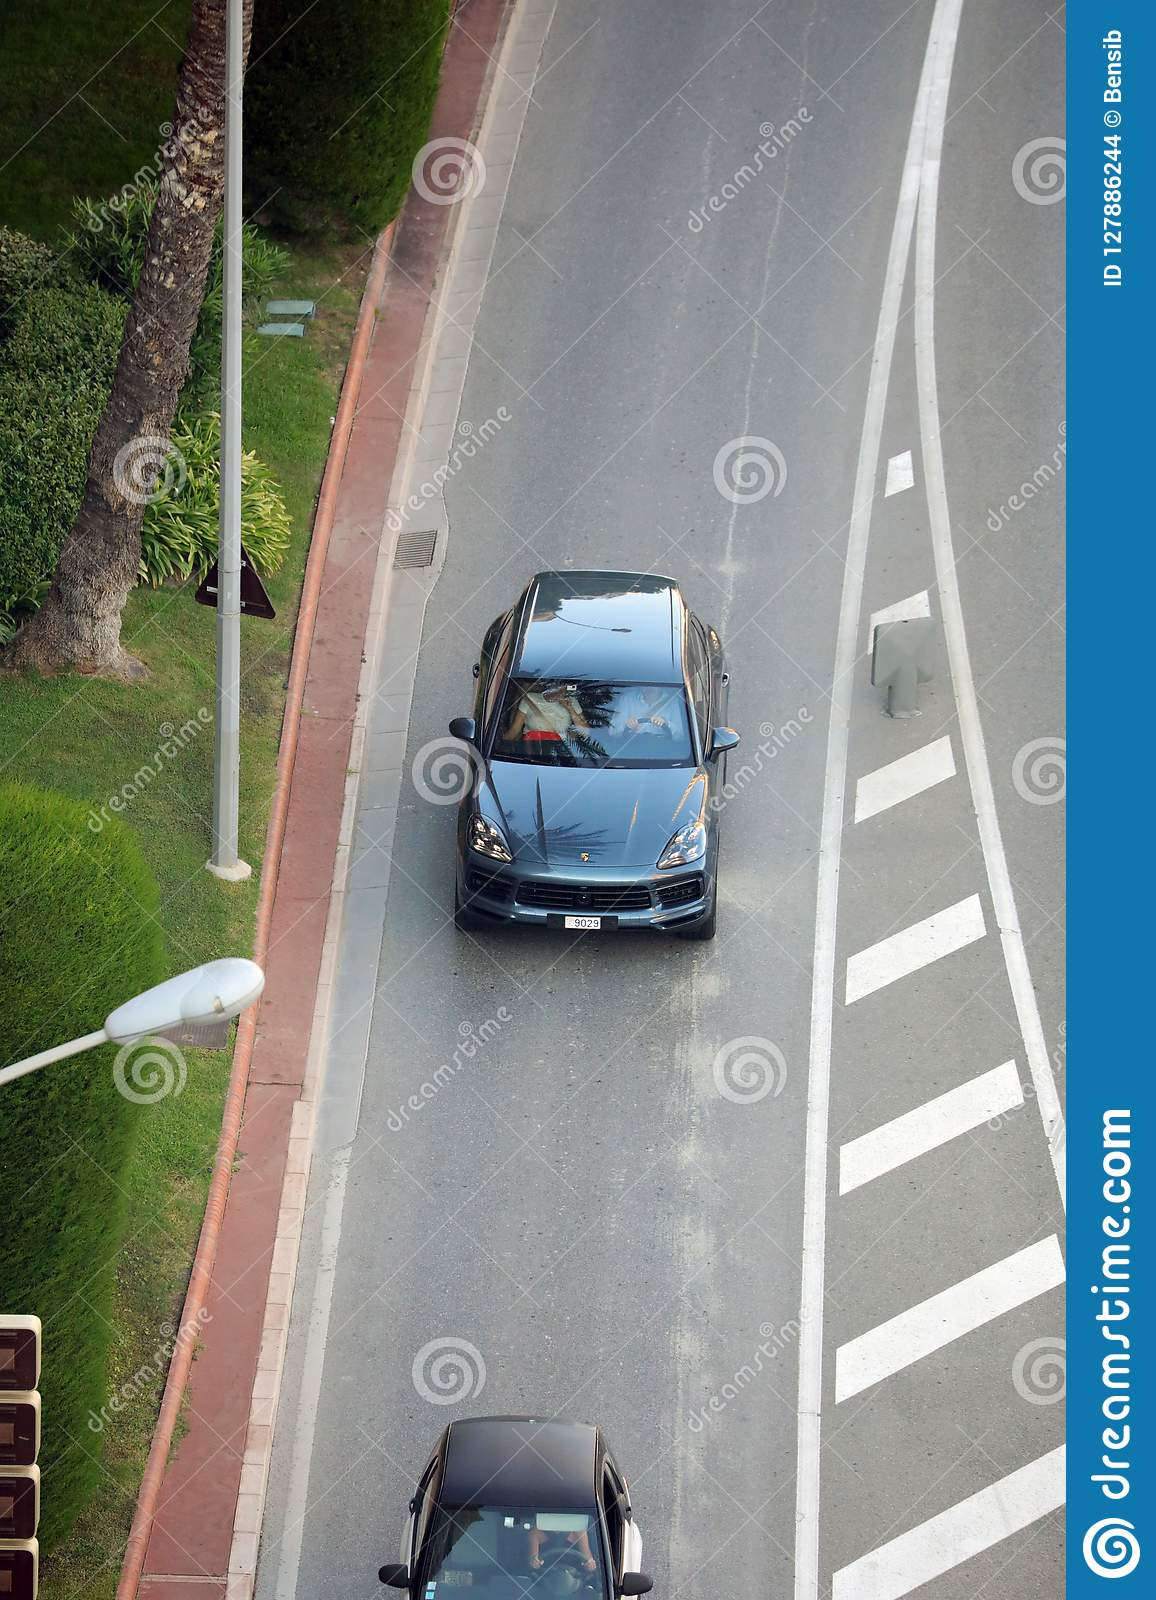 Aerial View Of A Beautiful Porsche Cayenne SUV Driving On